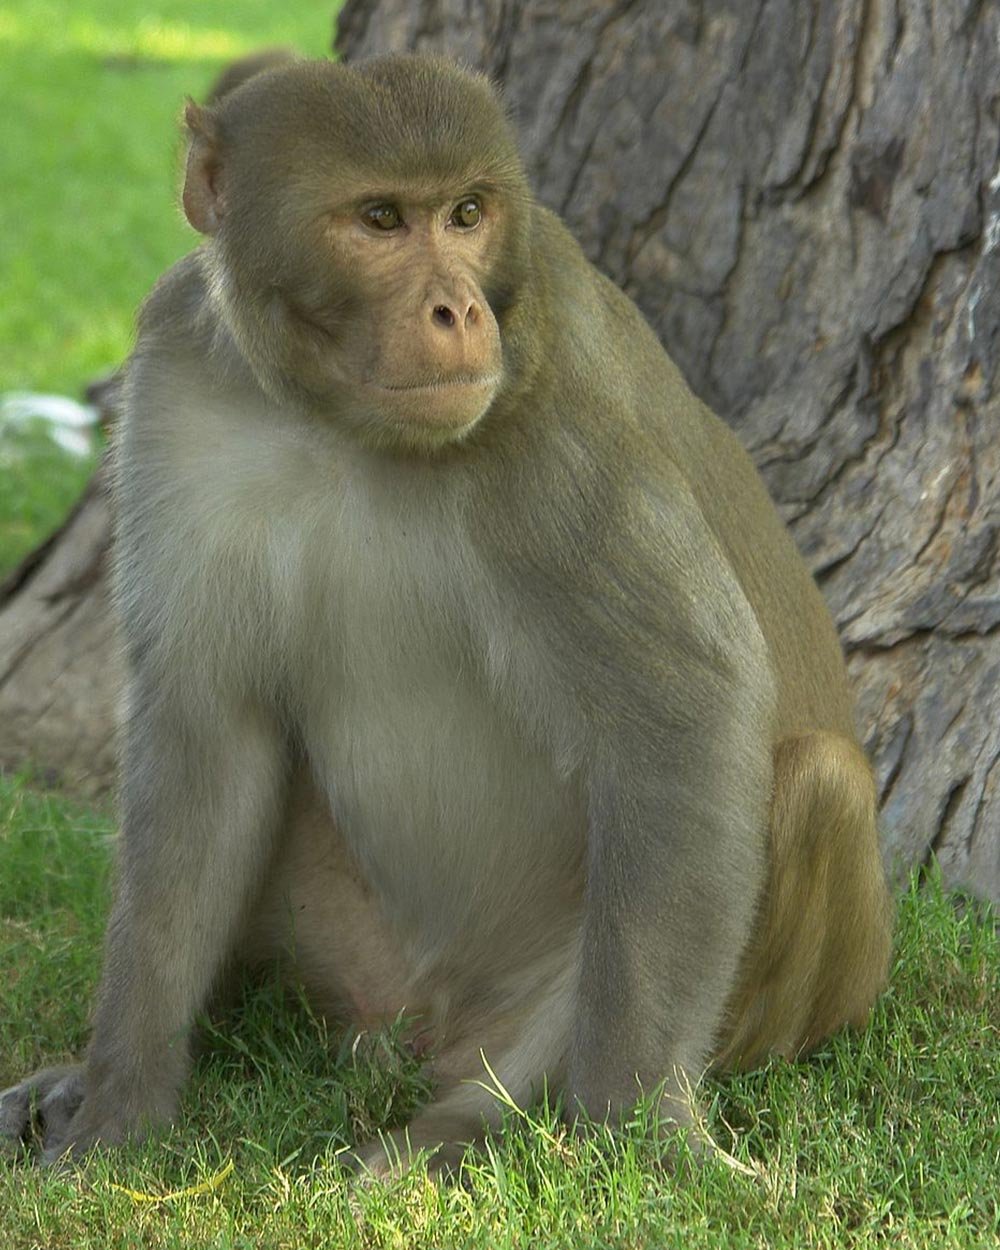 China stopped exporting Rhesus Macaques when the COVID pandemic began to spread worldwide in 2020.